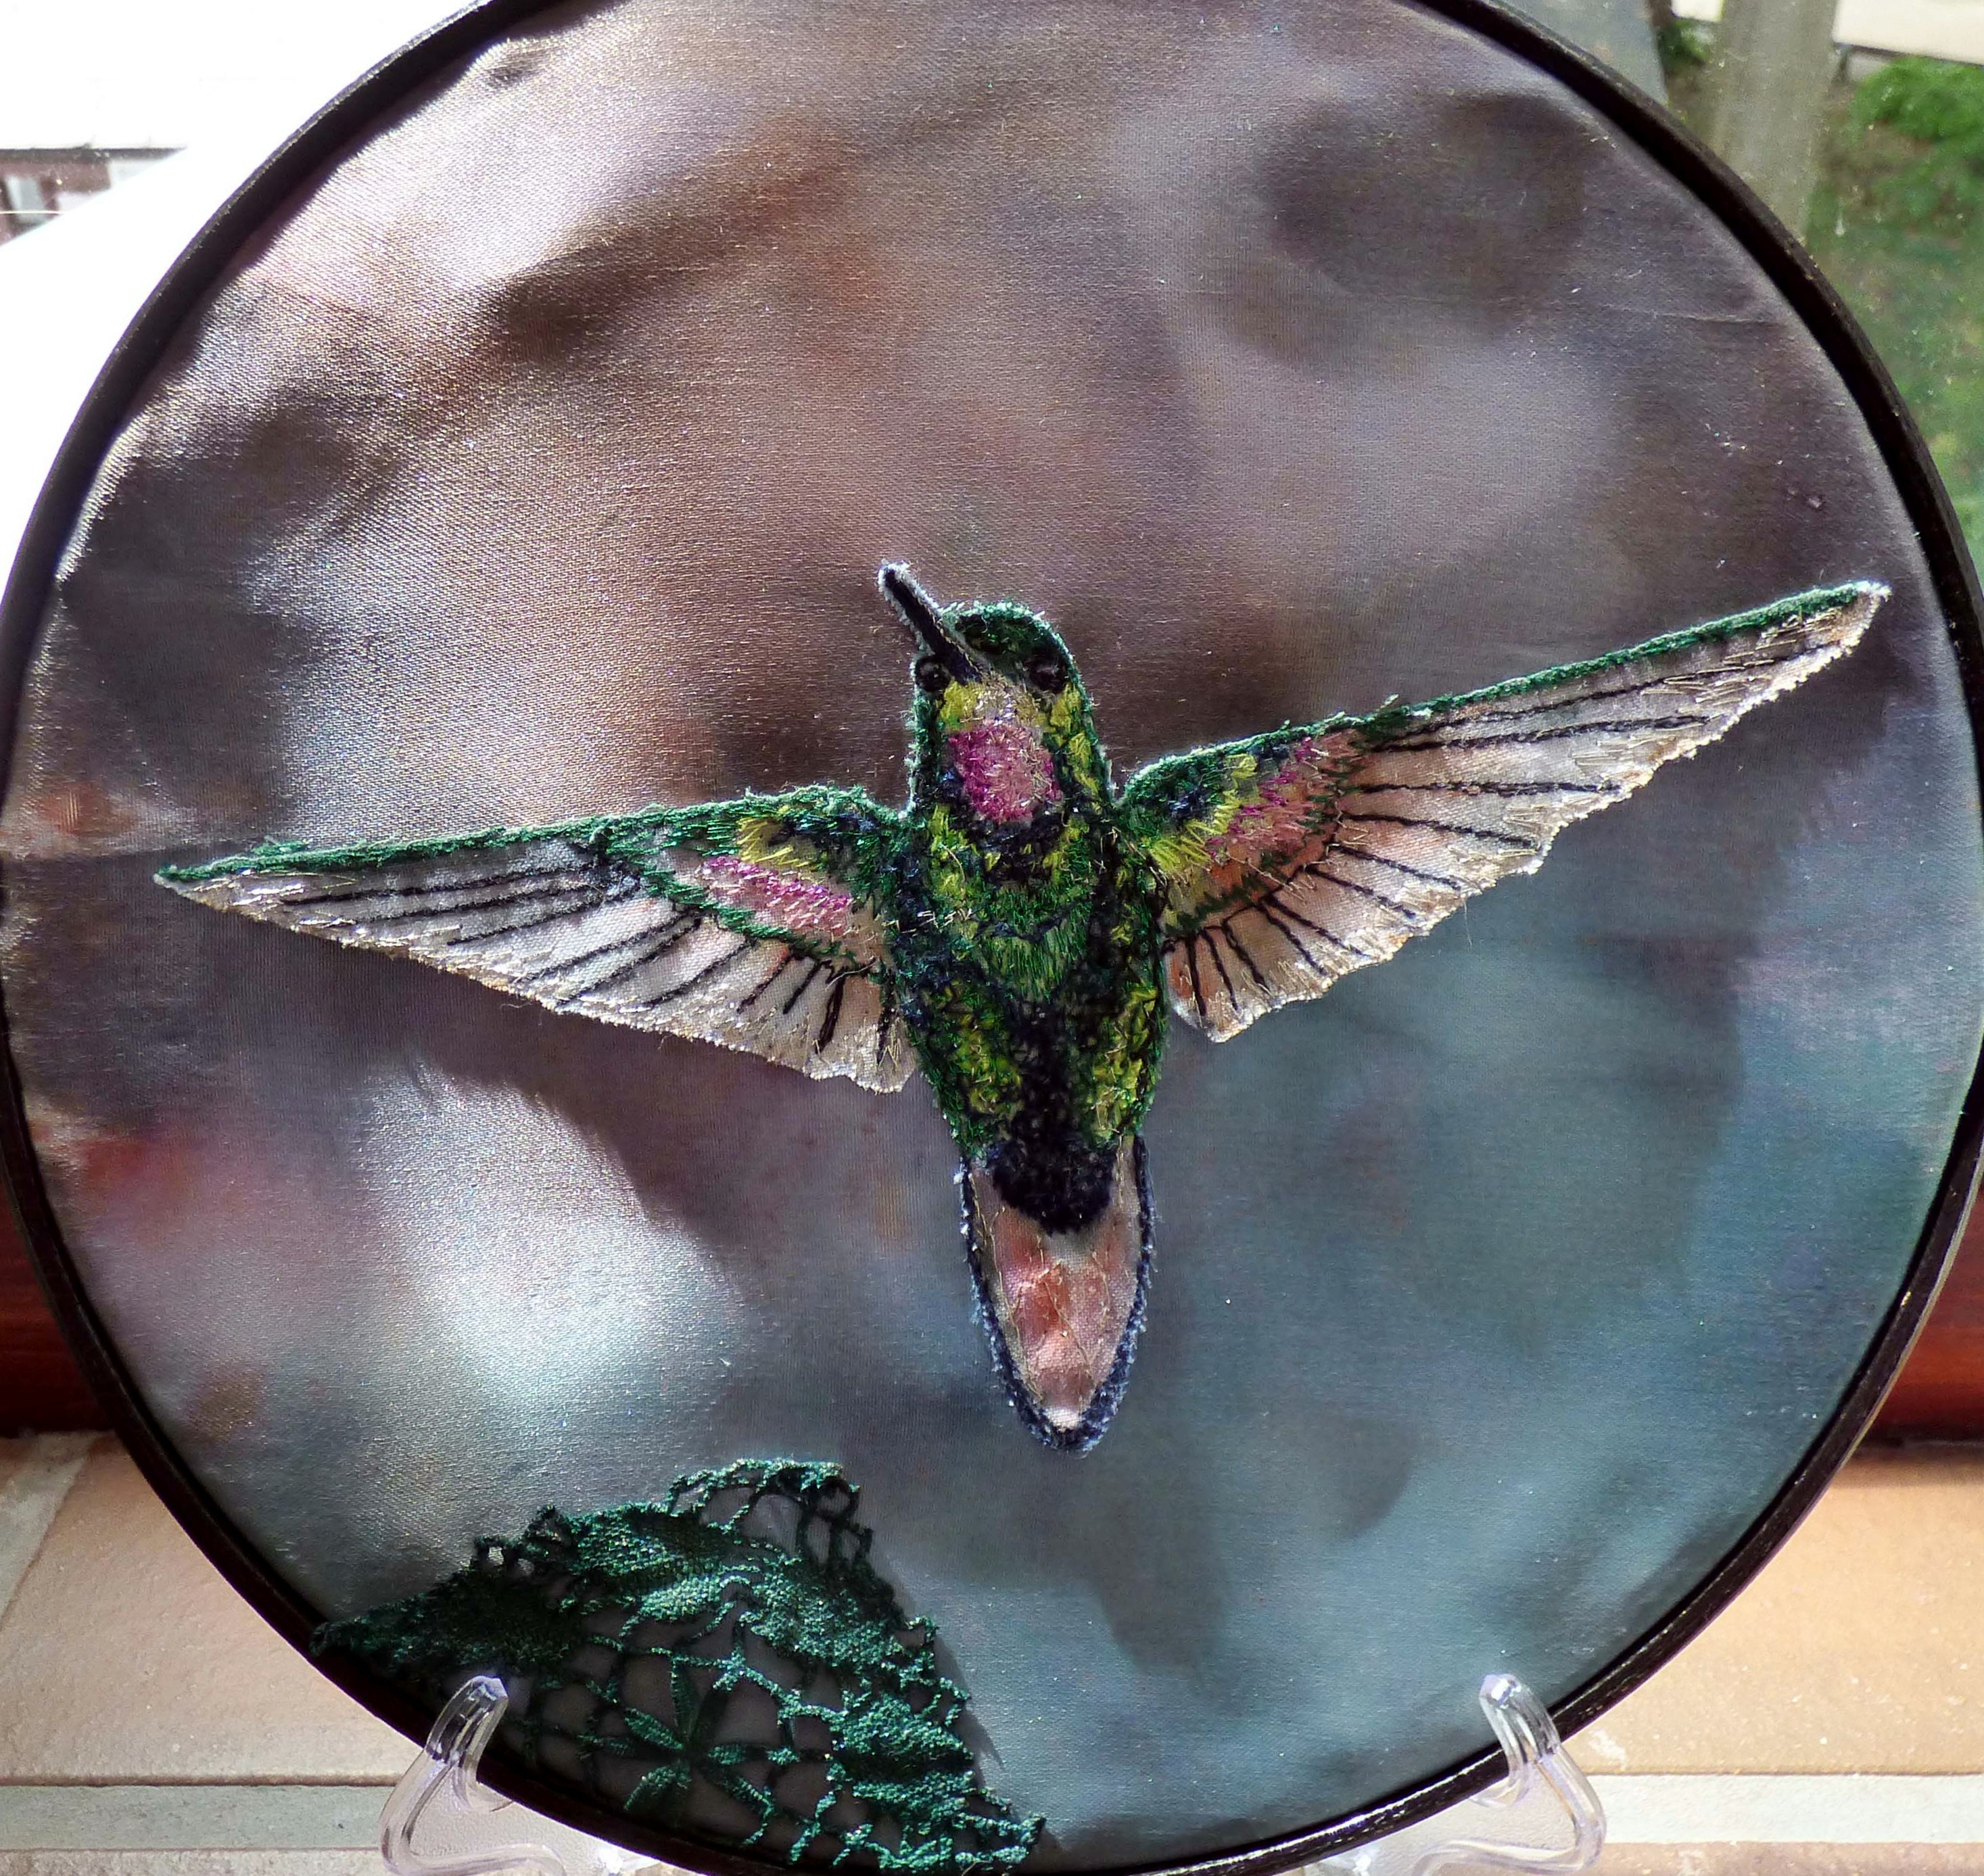 Hummingbird 1 by Susan Fielding, Natural Progression Group, July 2021